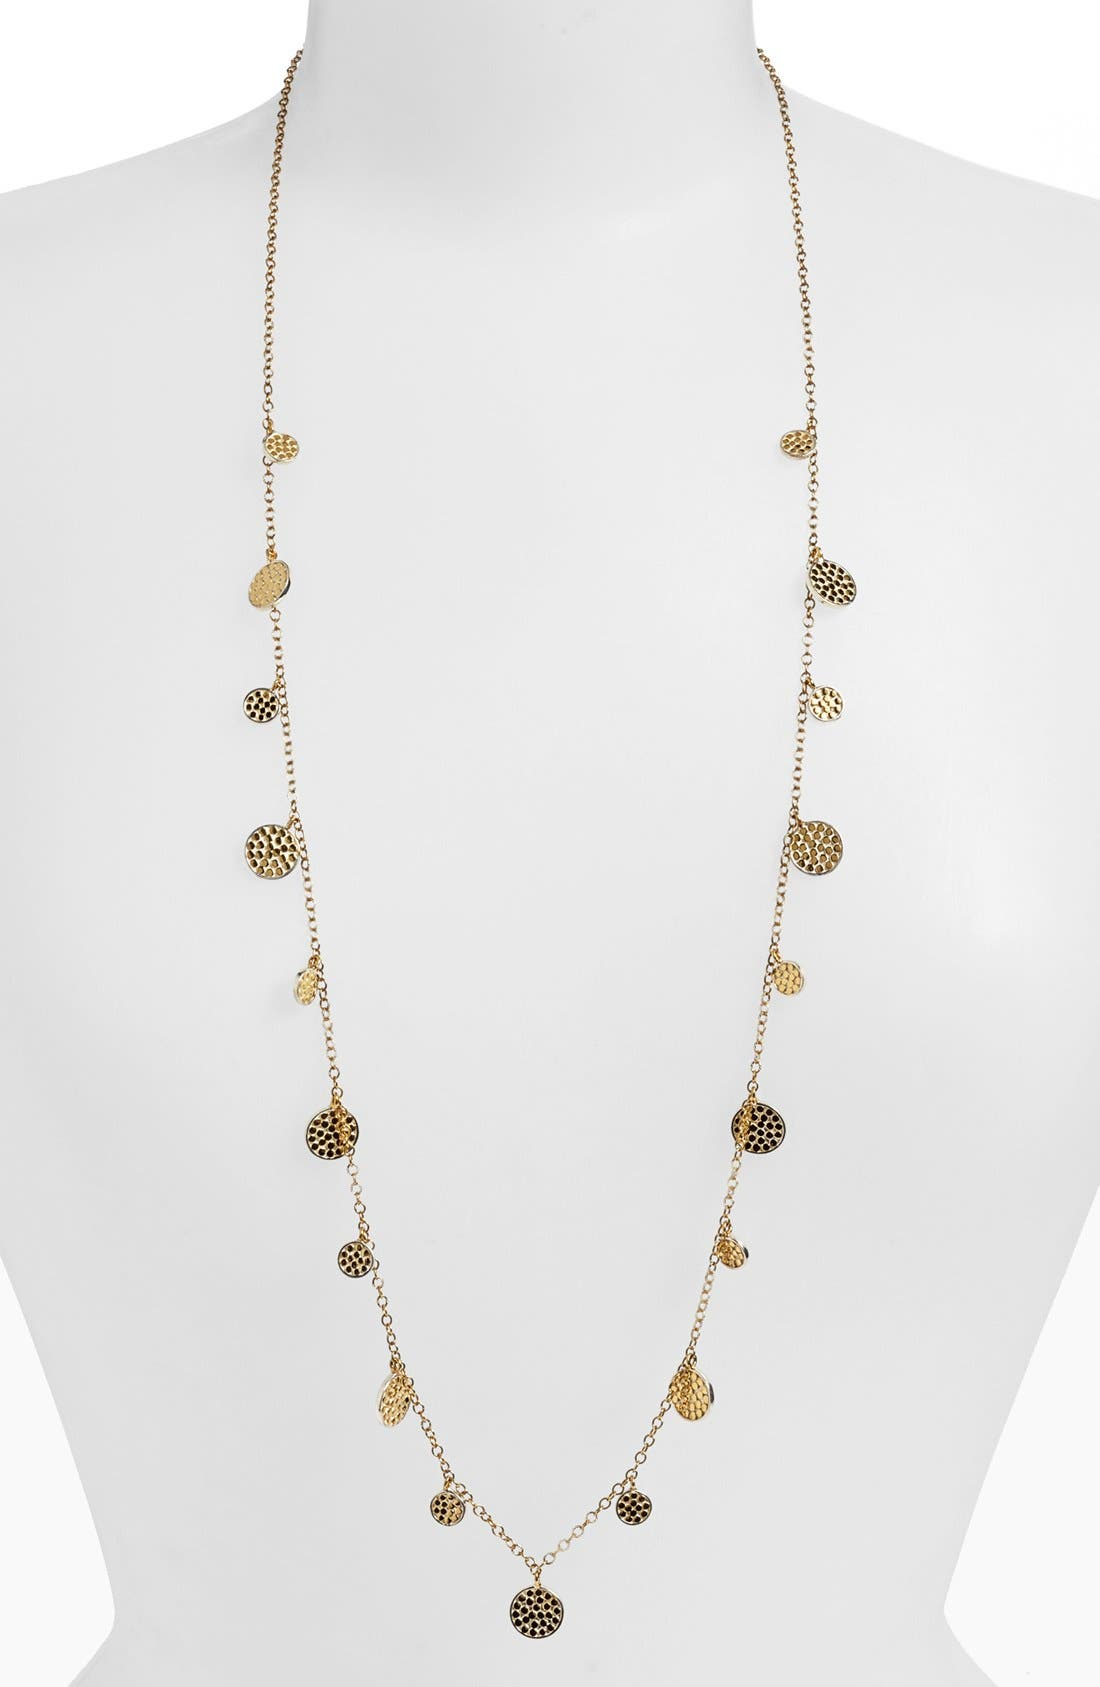 Main Image - Anna Beck 'Gili' Long Charm Necklace